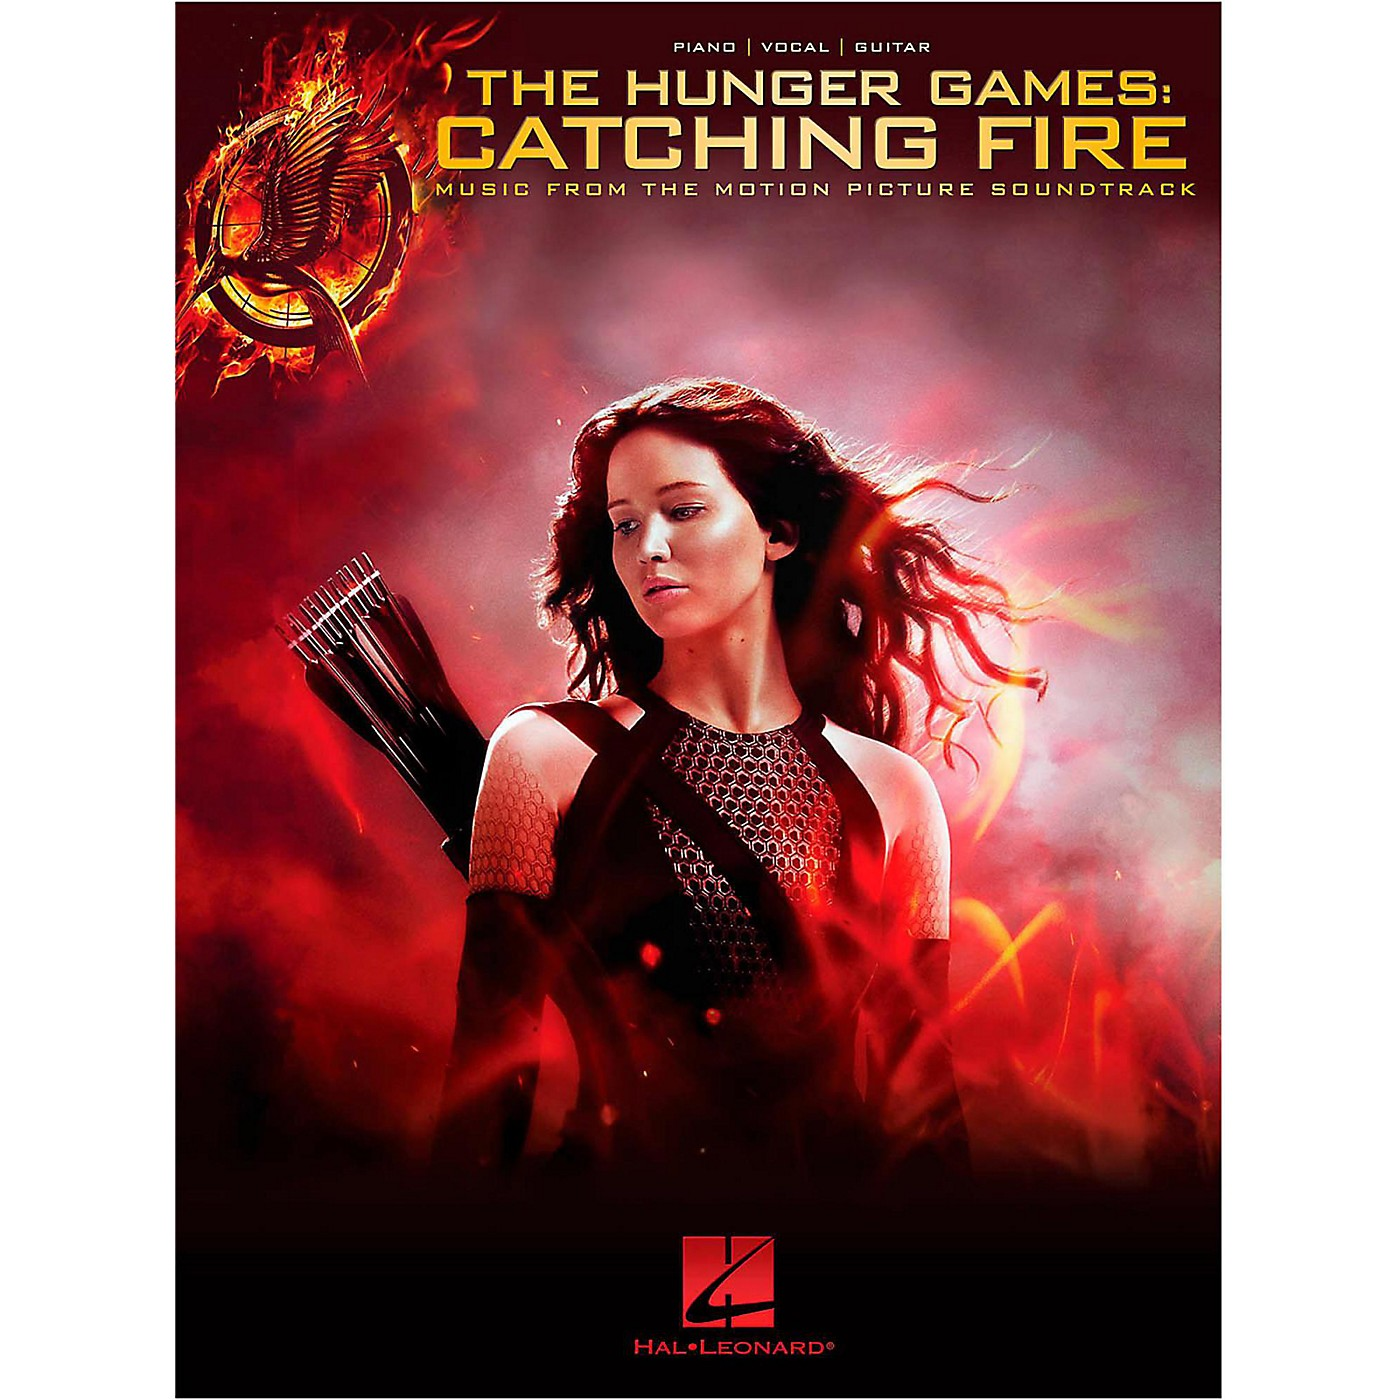 Hal Leonard The Hunger Games : Catching Fire - Music From The Motion Picture Soundtrack for Piano/Vocal/Guitar thumbnail